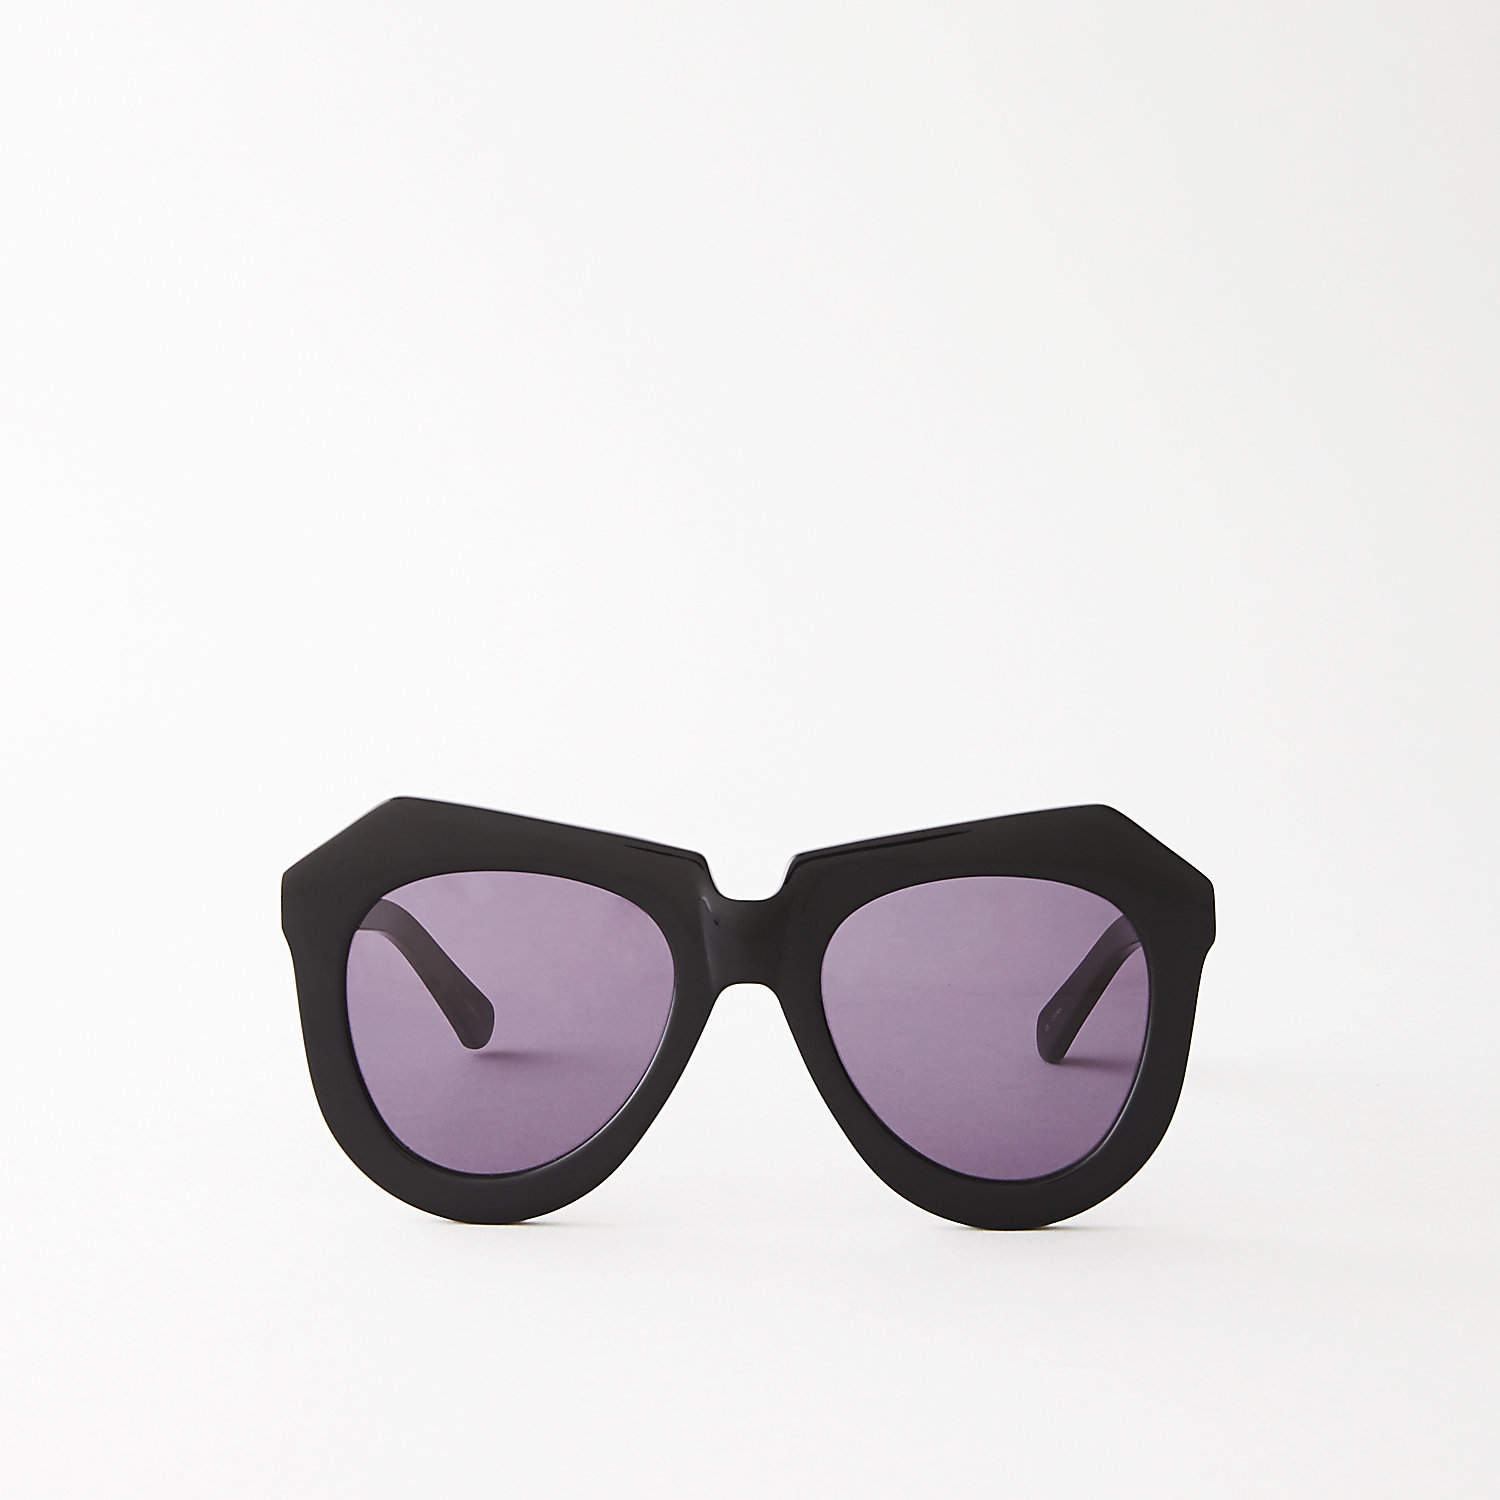 ONE WORSHIP SUNGLASSES - BLACK